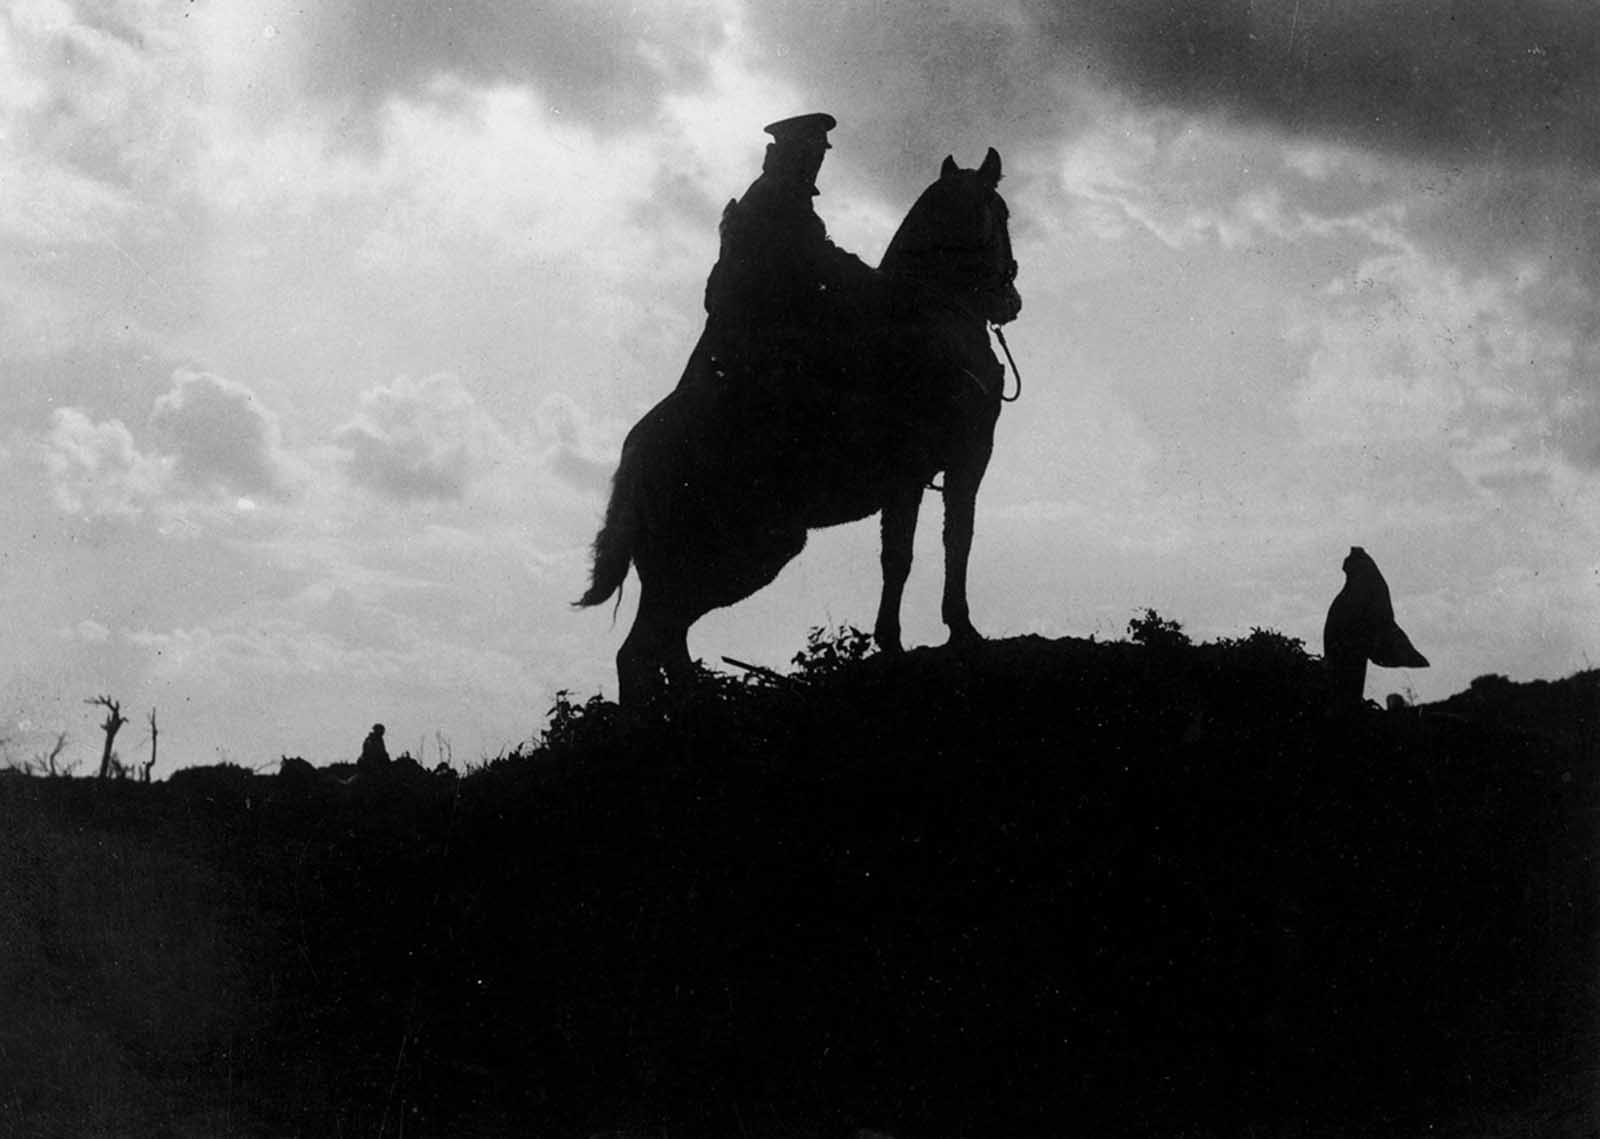 A single soldier on his horse, during a cavalry patrol in World War I. At the start of the war every major army had a substantial cavalry, and they performed well at first. However, the development of barbed wire, machine guns and trench warfare soon made attacks from horseback far more costly and ineffective on the Western Front. Cavalry units did prove useful throughout the war in other theatres though, including the Eastern Front, and the Middle East.